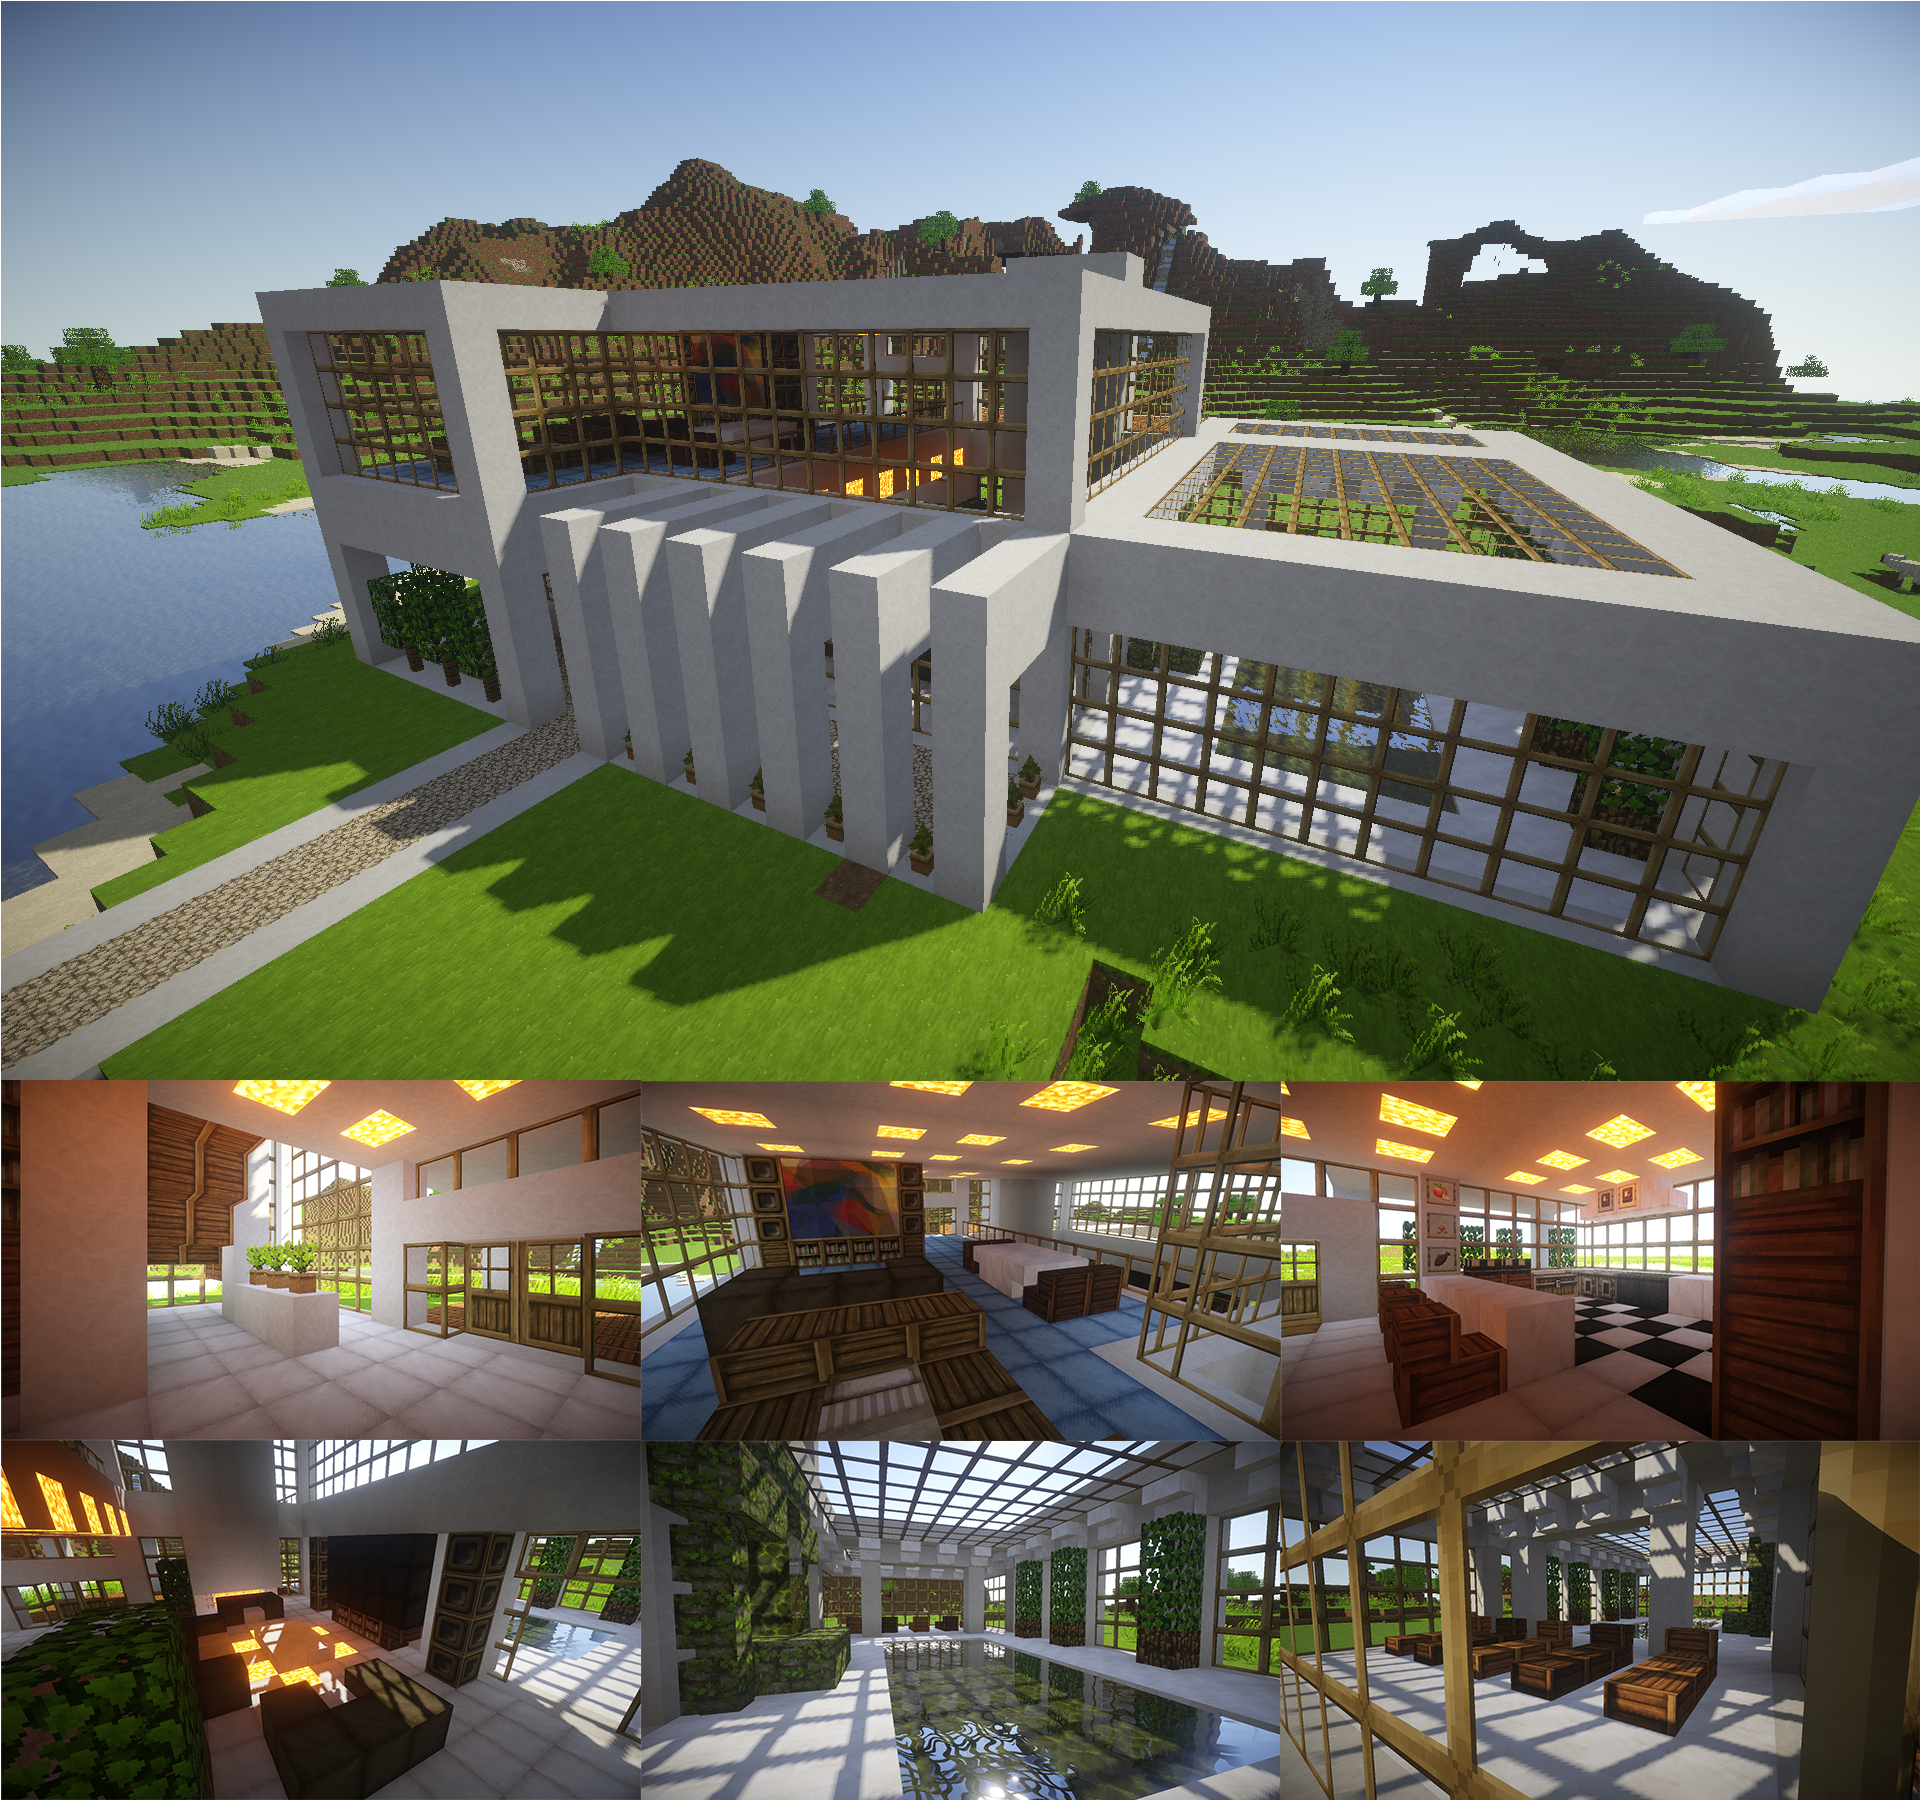 Modern Minecraft House by DaggyTee on DeviantArt